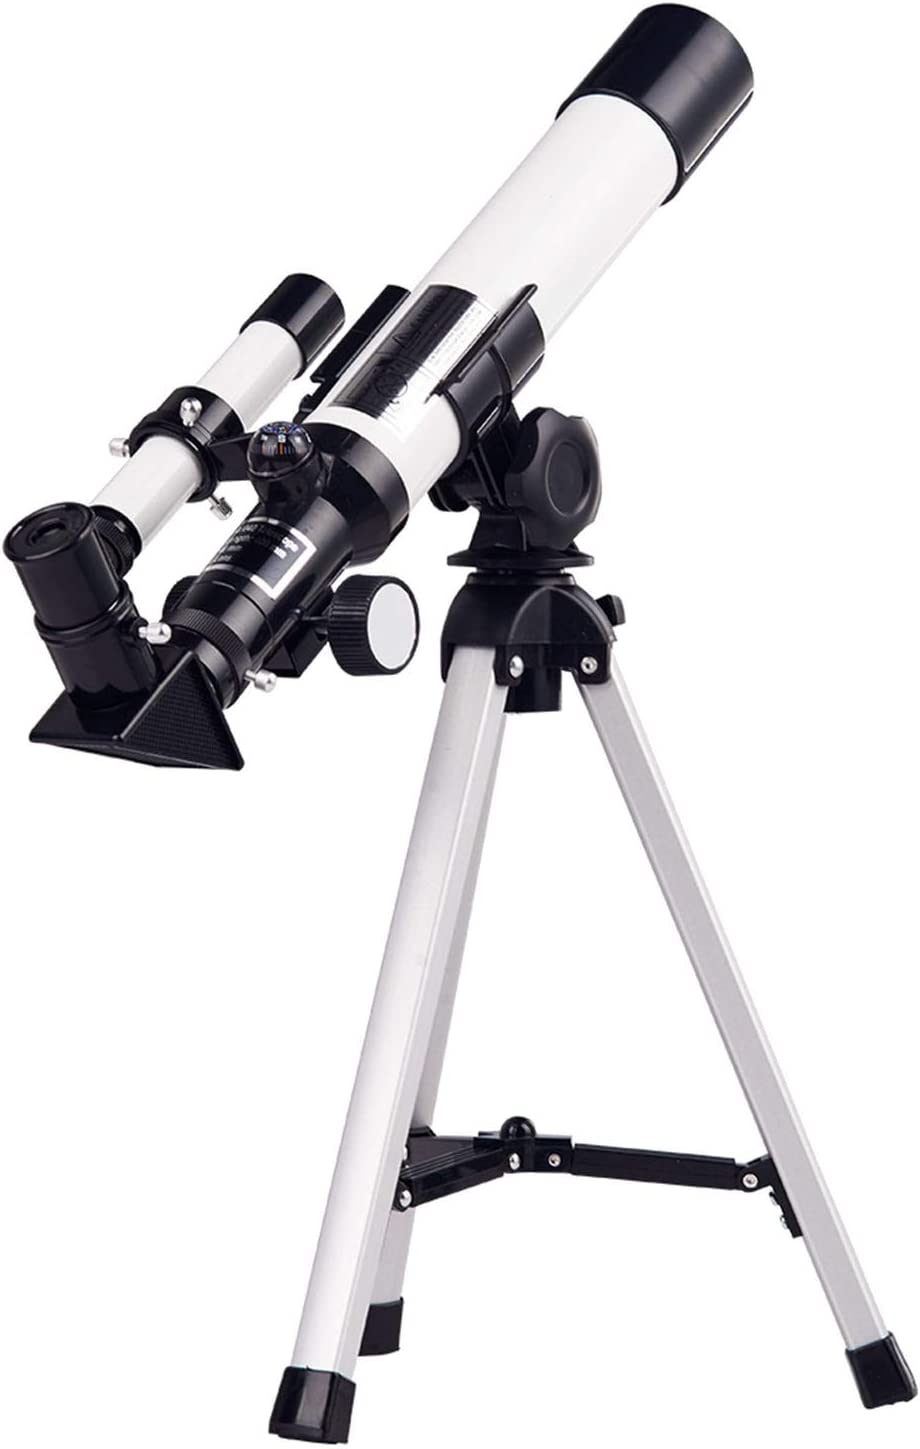 Kexle Astronomy Telescopes for Adults & Kids, F40040N Astronomical Telescope Professional Stargazing HD Deep Space Adult Student High Power, Includes Two Eyepieces Tripod Finder